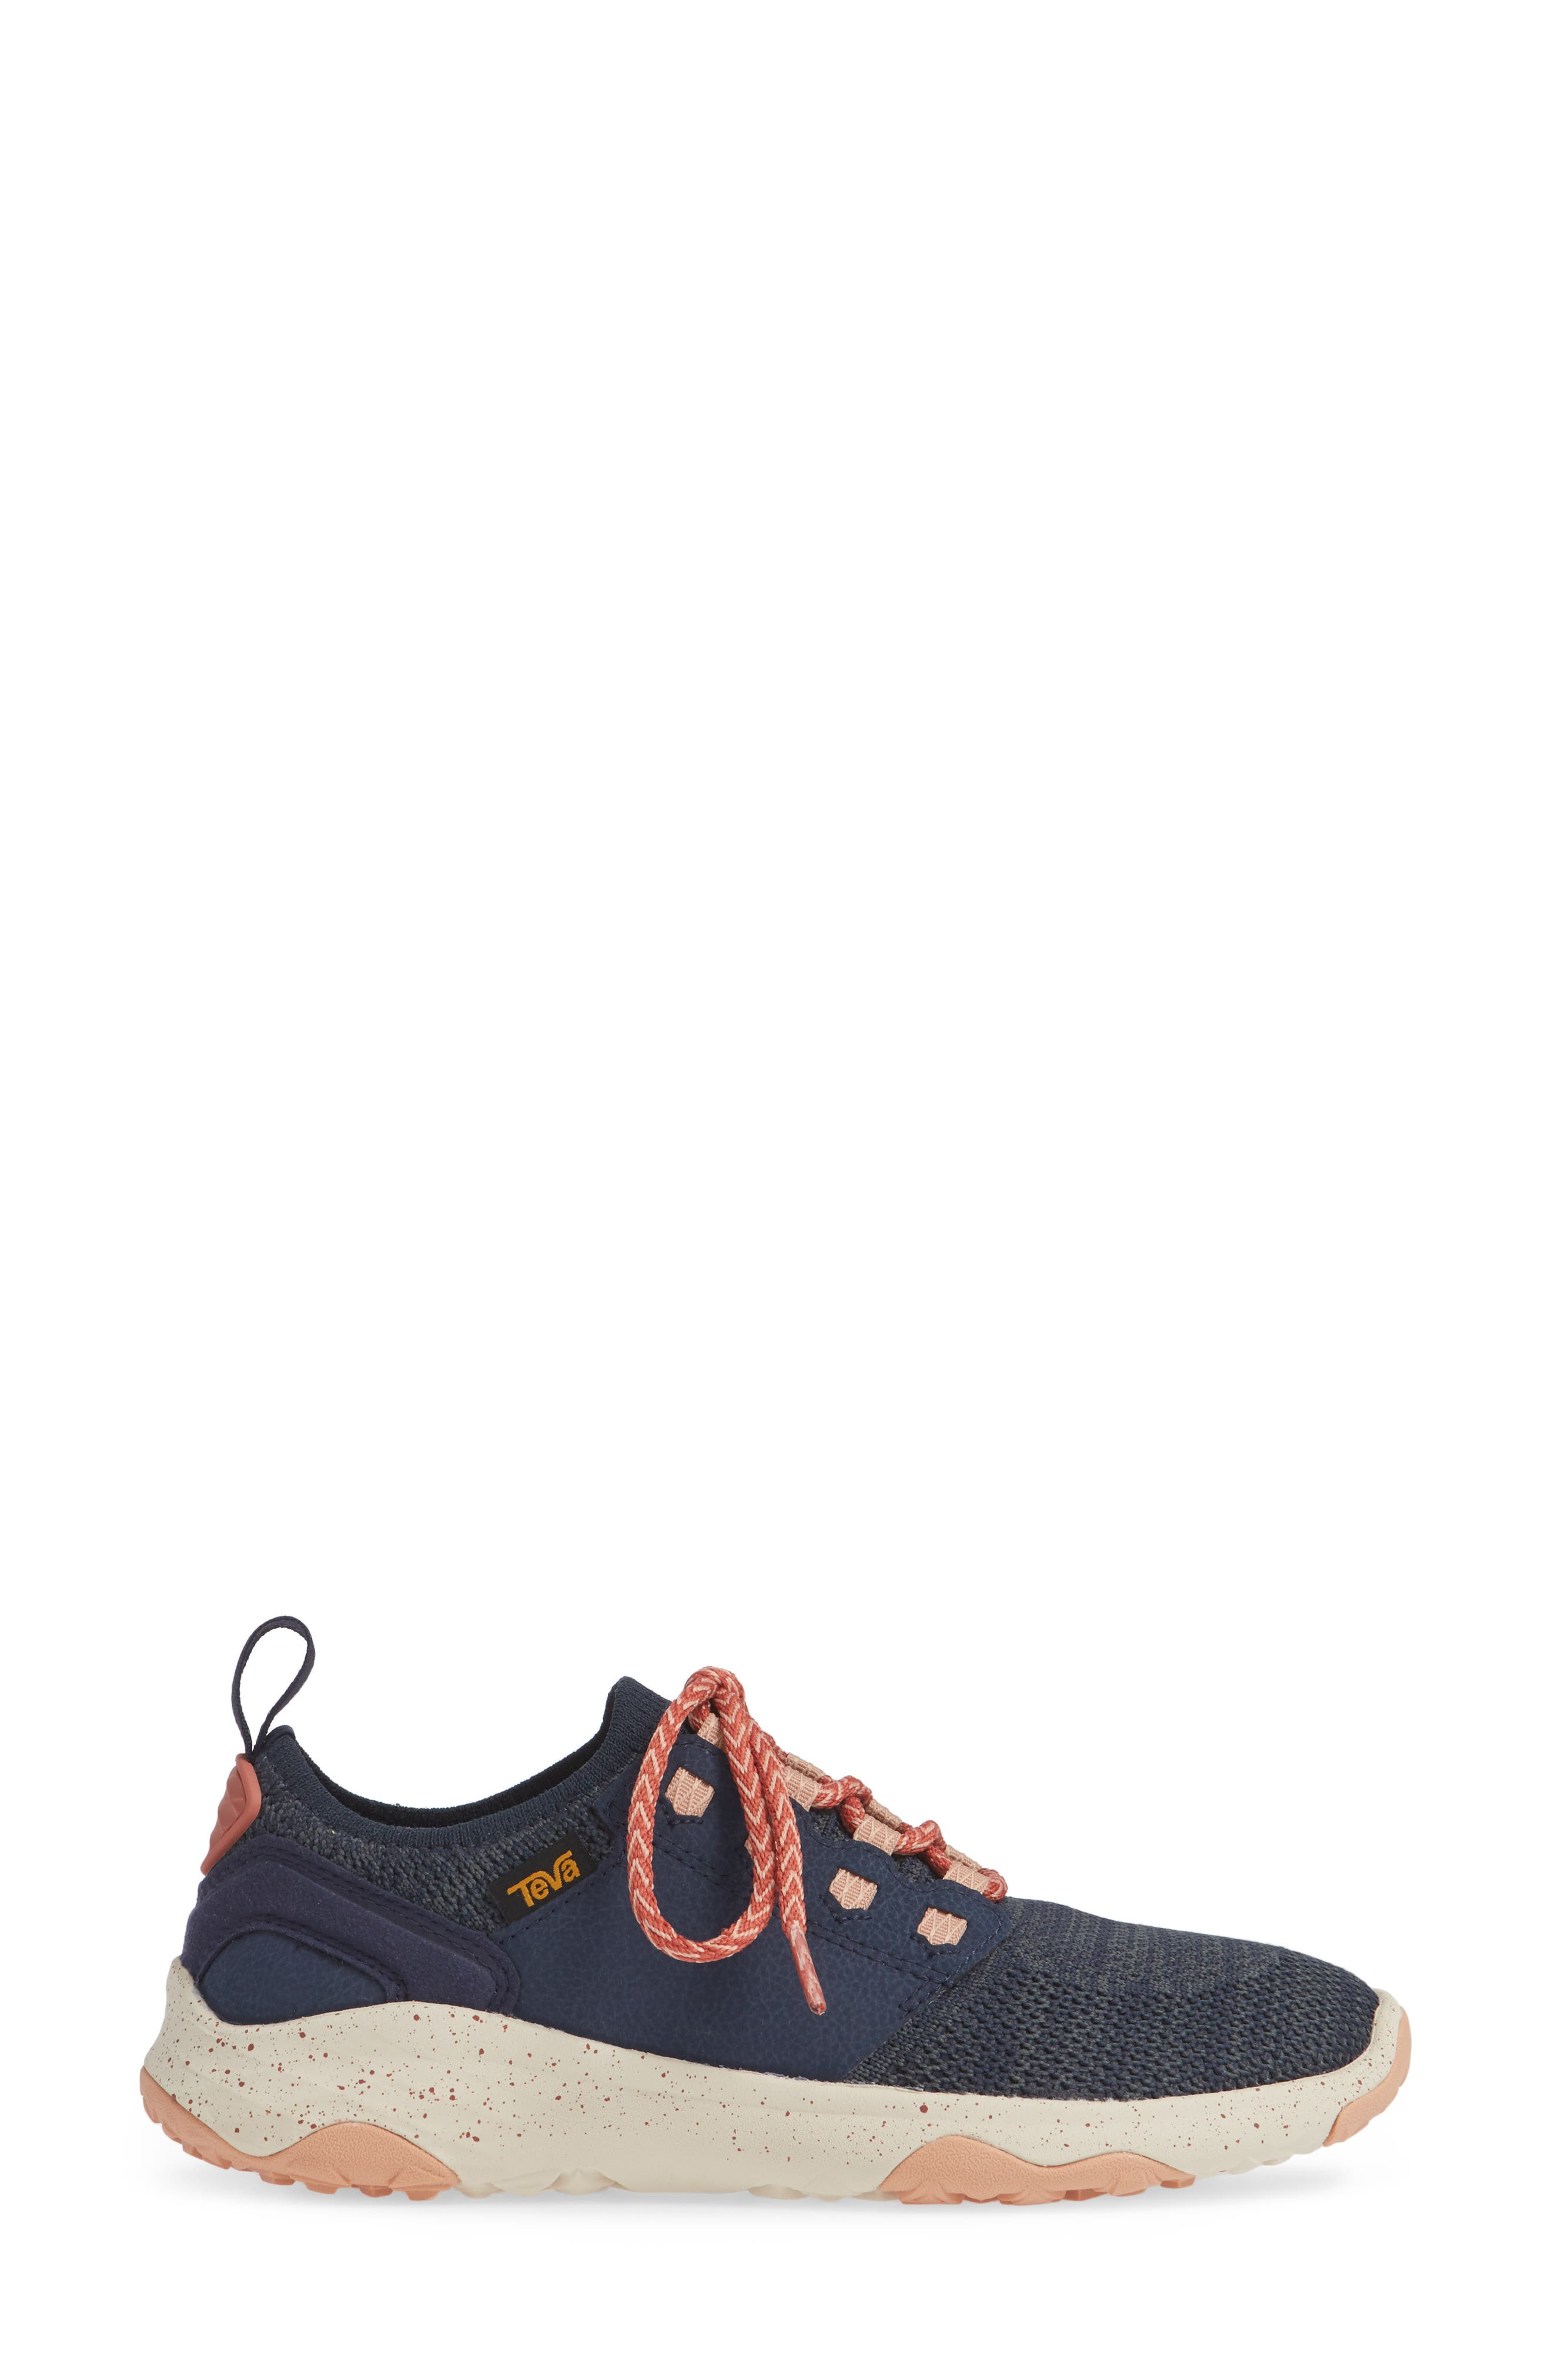 Arrowood 2 Waterproof Knit Sneaker,                             Alternate thumbnail 3, color,                             MIDNIGHT NAVY FABRIC